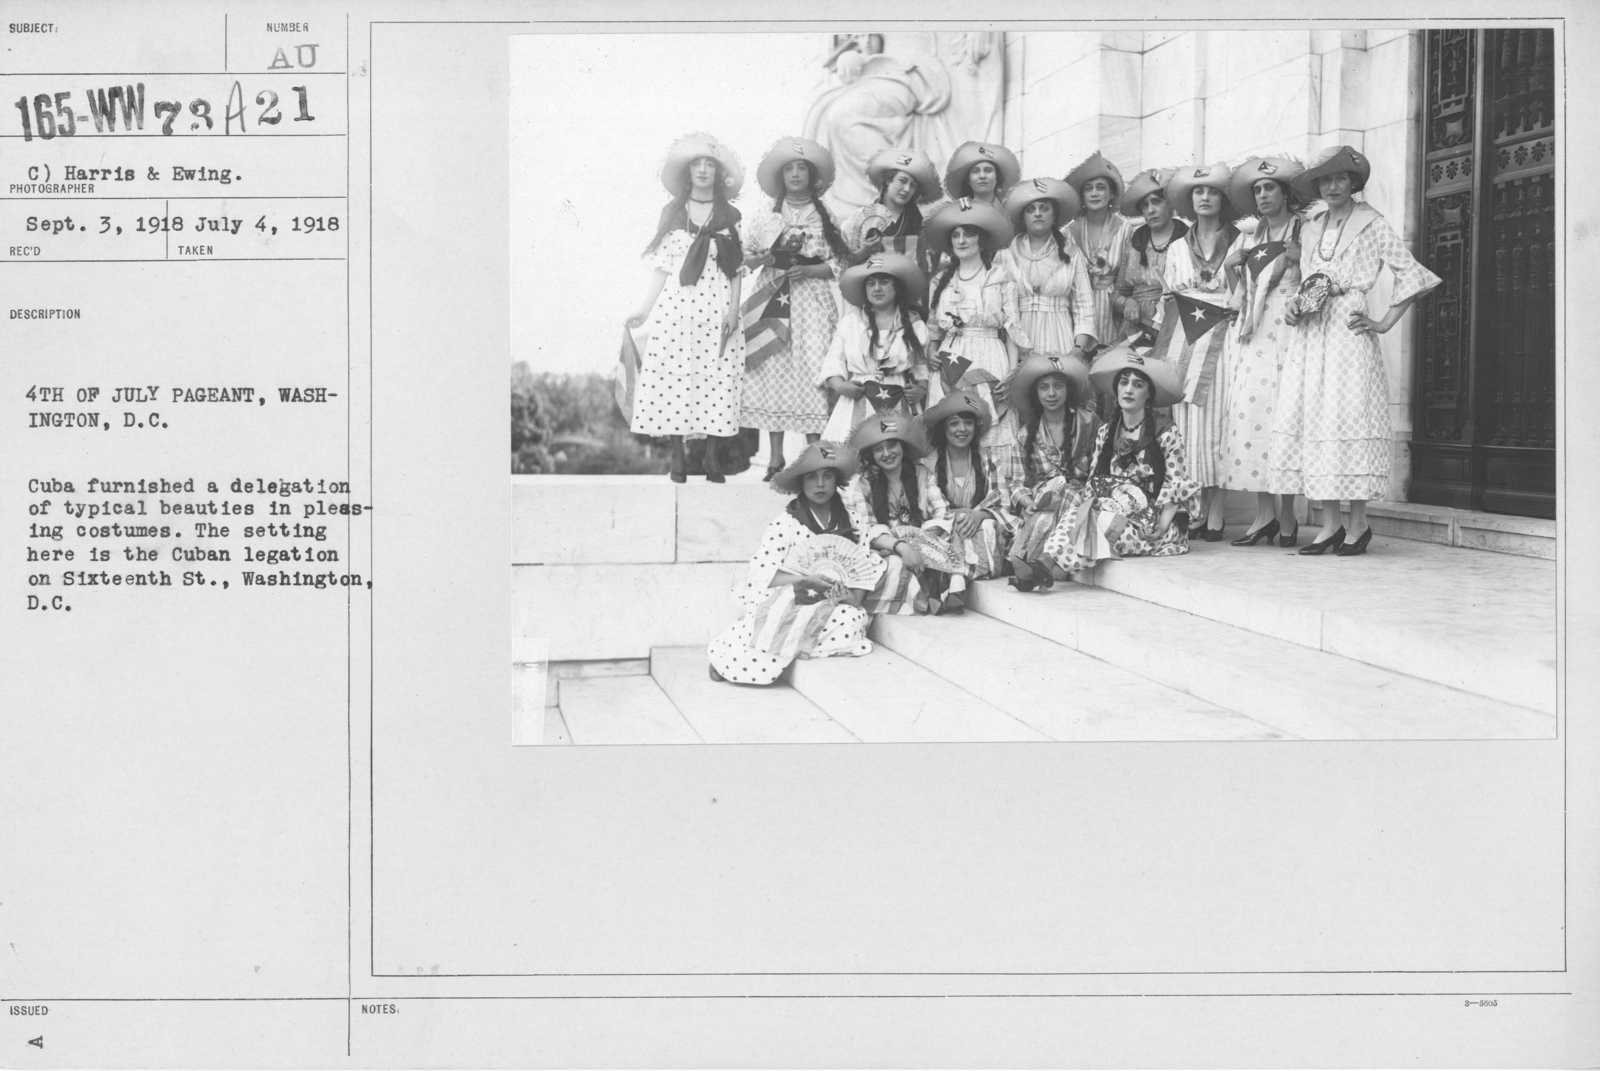 Ceremonies - Independence Day, 1918 - Amer. Misc. - 4th of July Pageant, Washington, D.C. Cuba furnished a delegation of typical beauties in pleasing costumes. The setting here is the Cuban legation on Sixteenth St., Washington, D.C